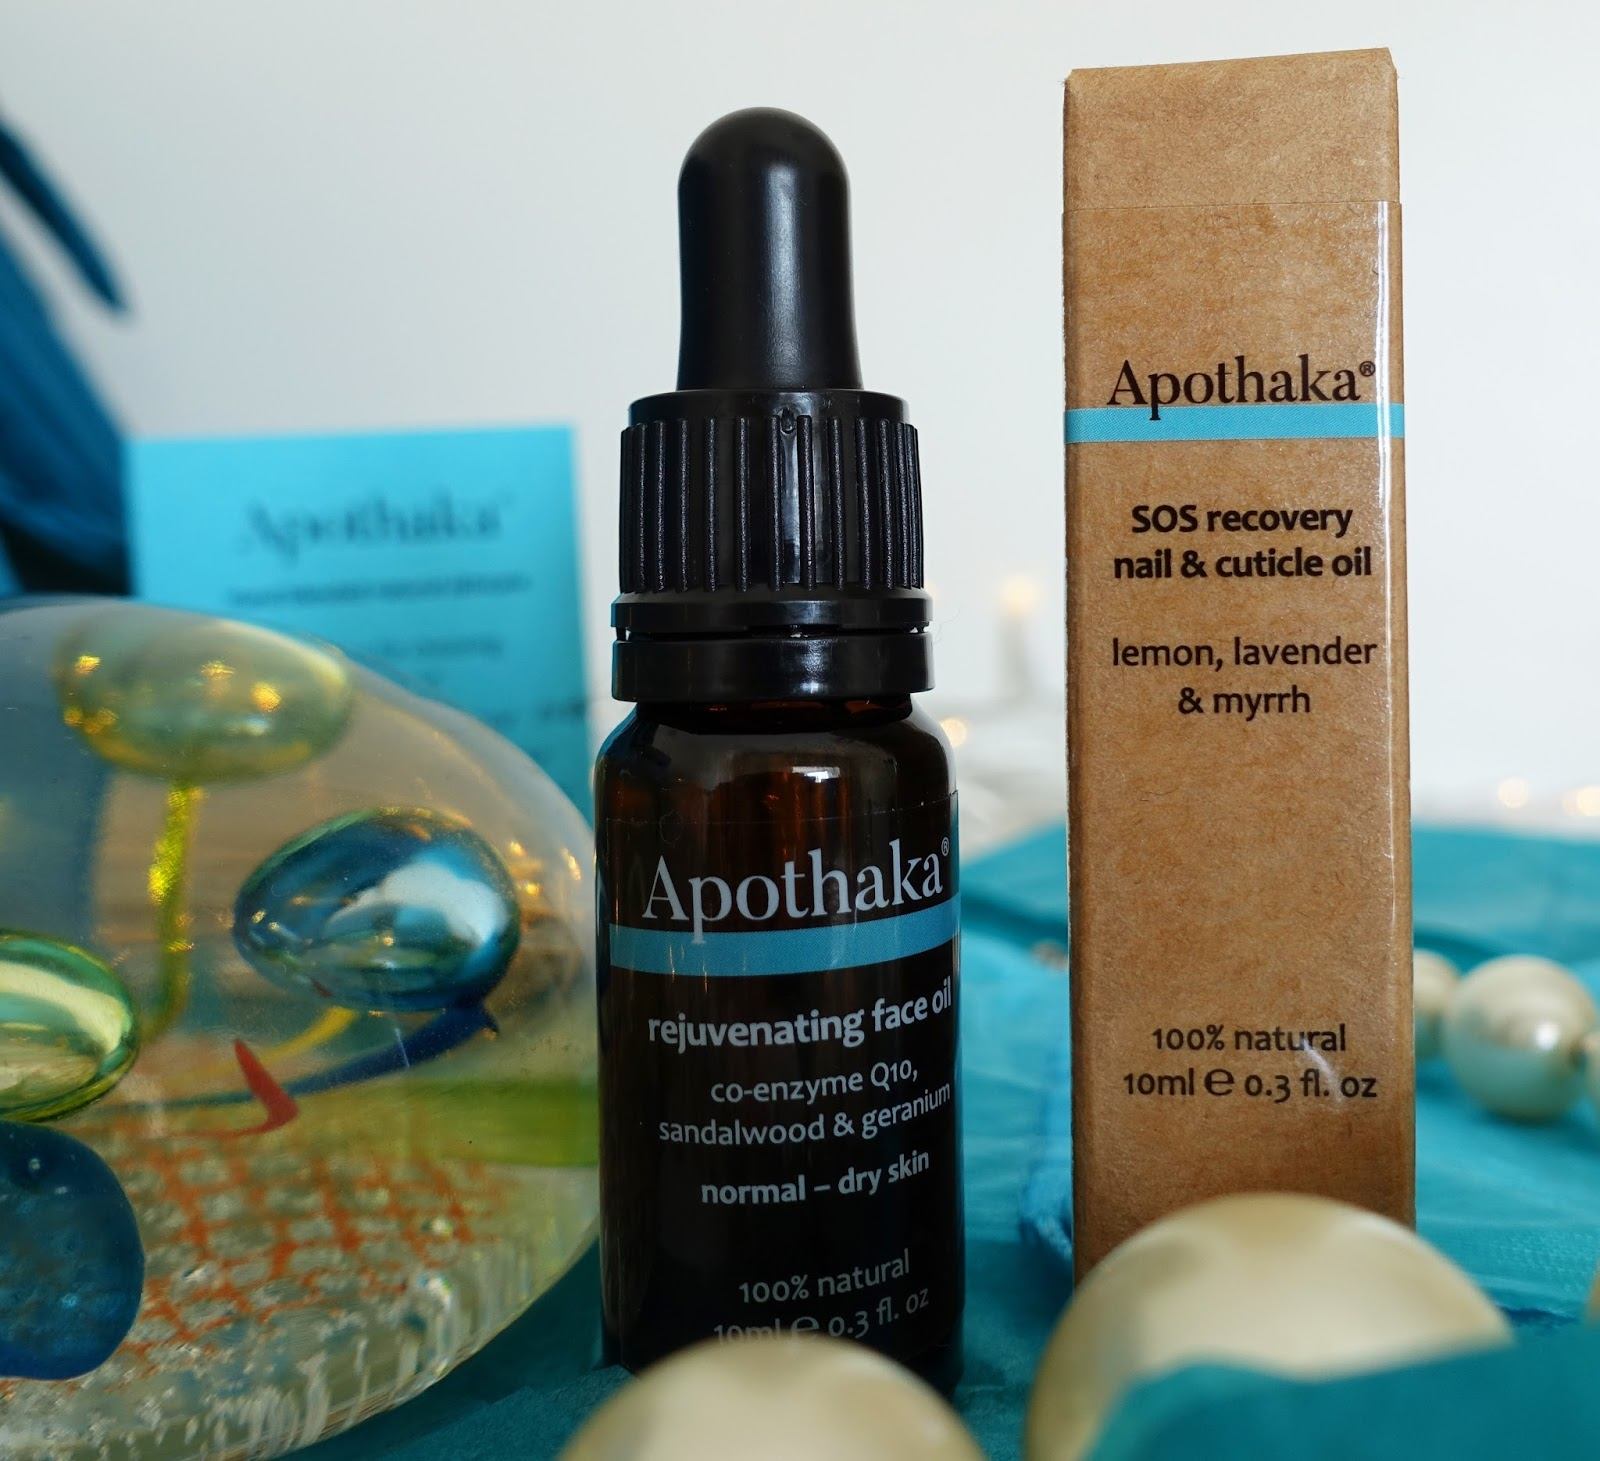 These products are hand made by Apothaka founder Natasha Dauncey and 100 per cent natural but highly effective